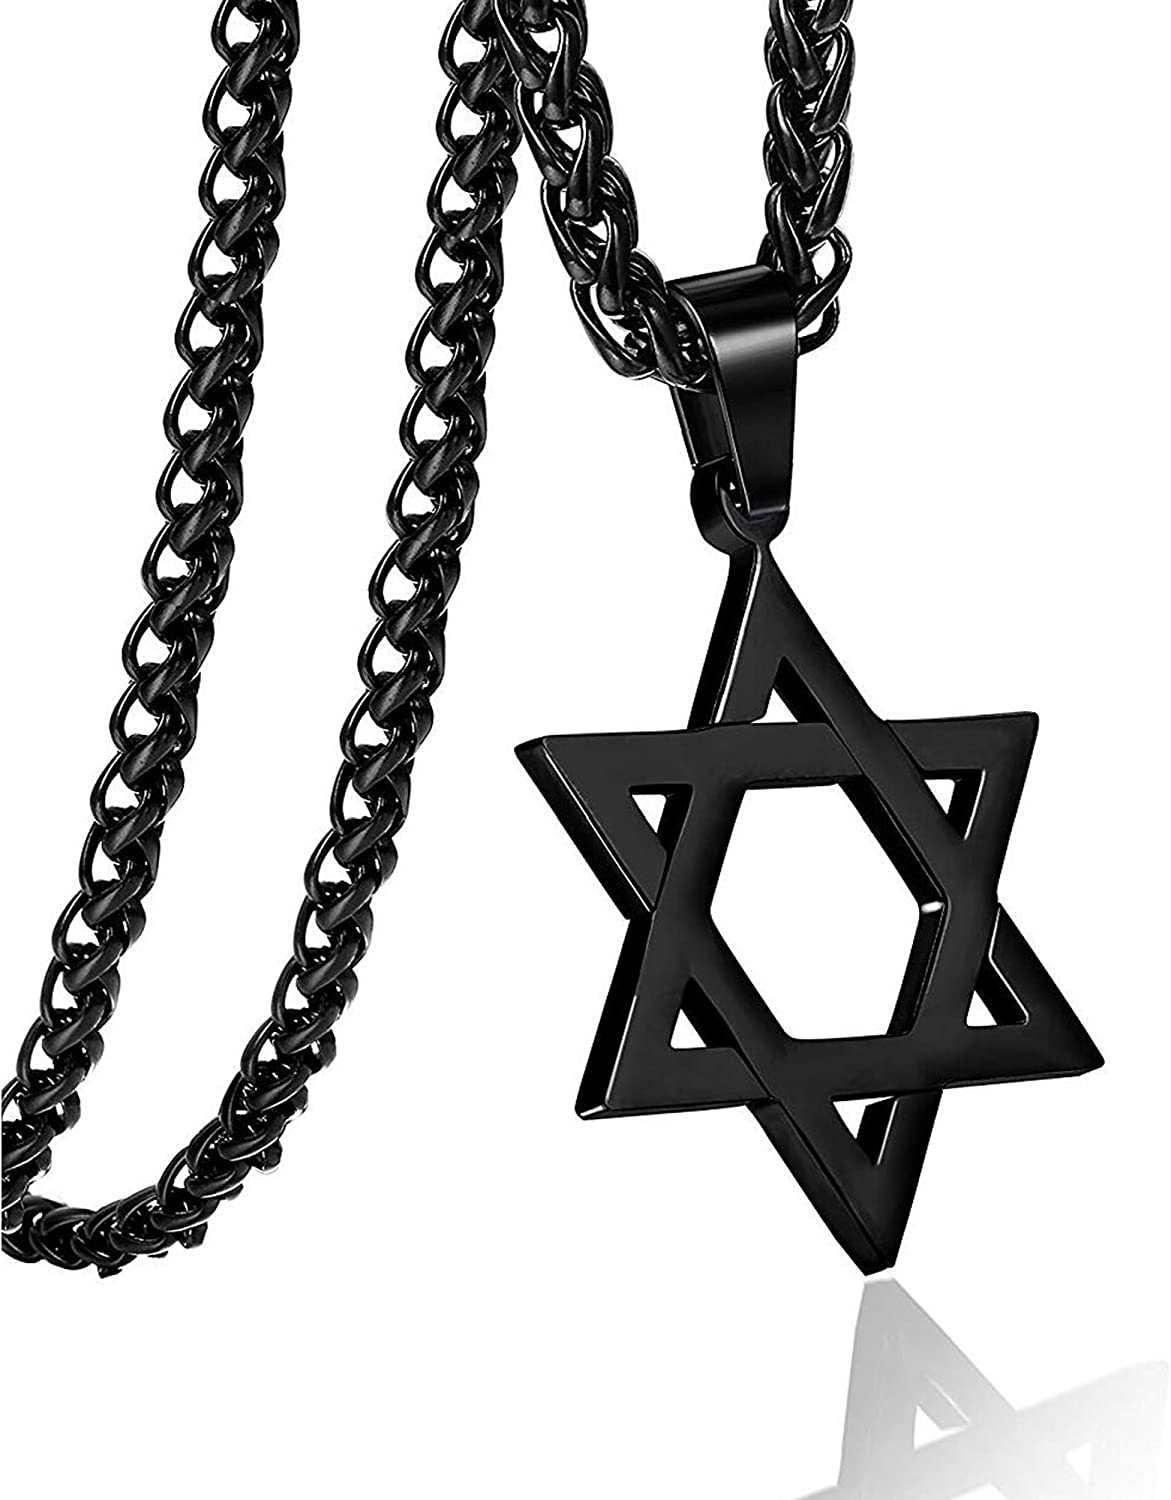 Apopo Star of David Six Point Star Necklace Hiphop Stainless Steel Pendant Jewelry …